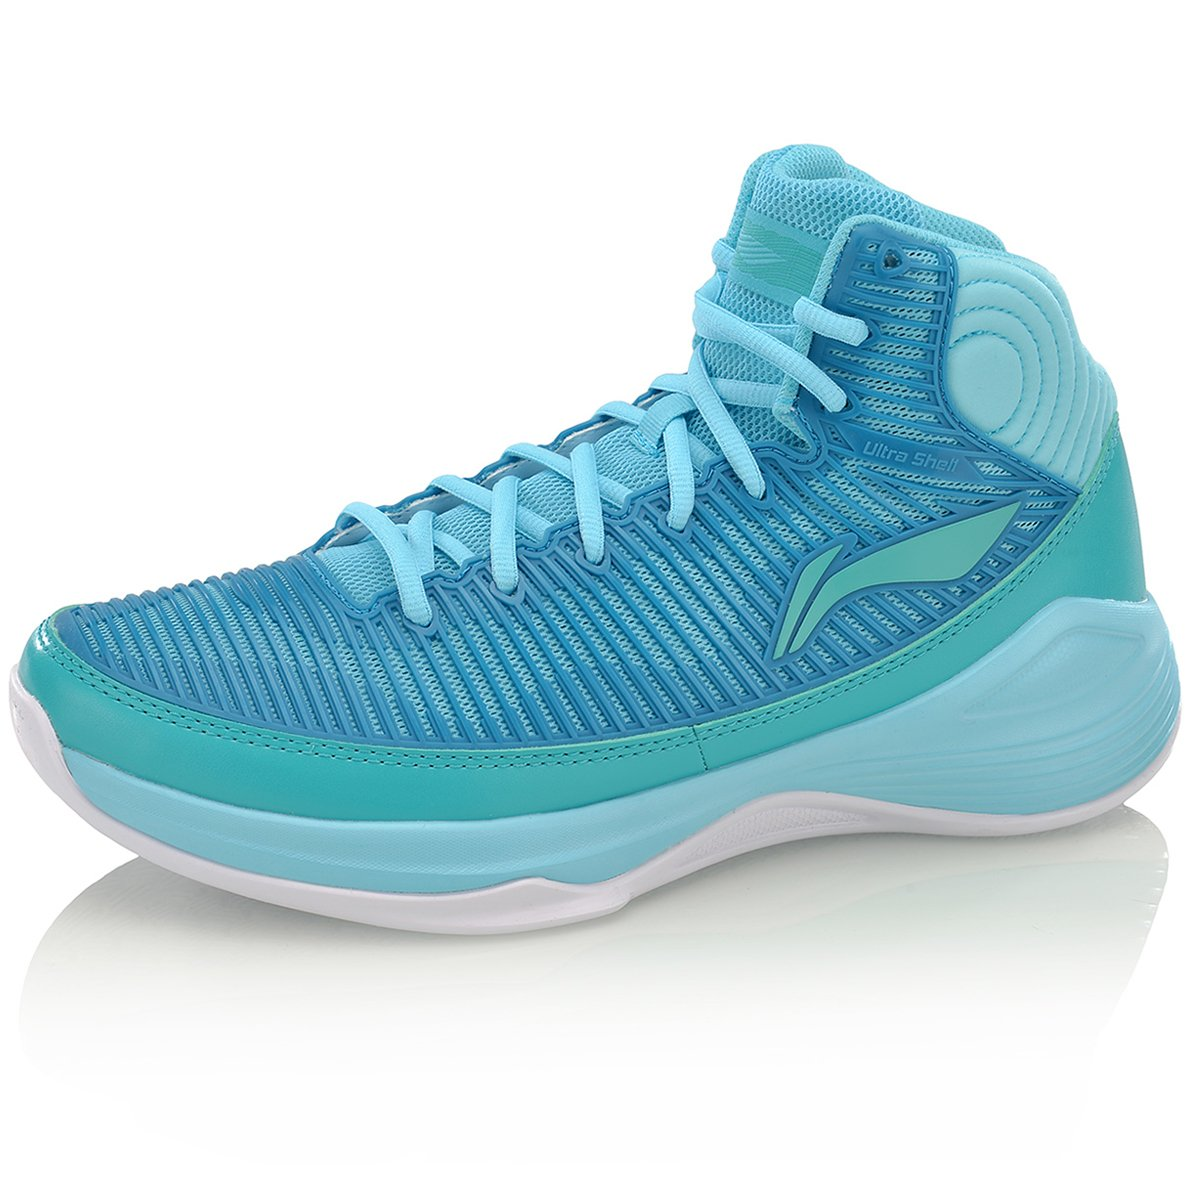 LI-NING Men Quickness Basketball Shoes Support Ultra Shell Sneakers Stability Dynamic Shell Sports Shoes B078HZBGRB US SIZE 10.5 FEET LENGTH 280MM|3h Men